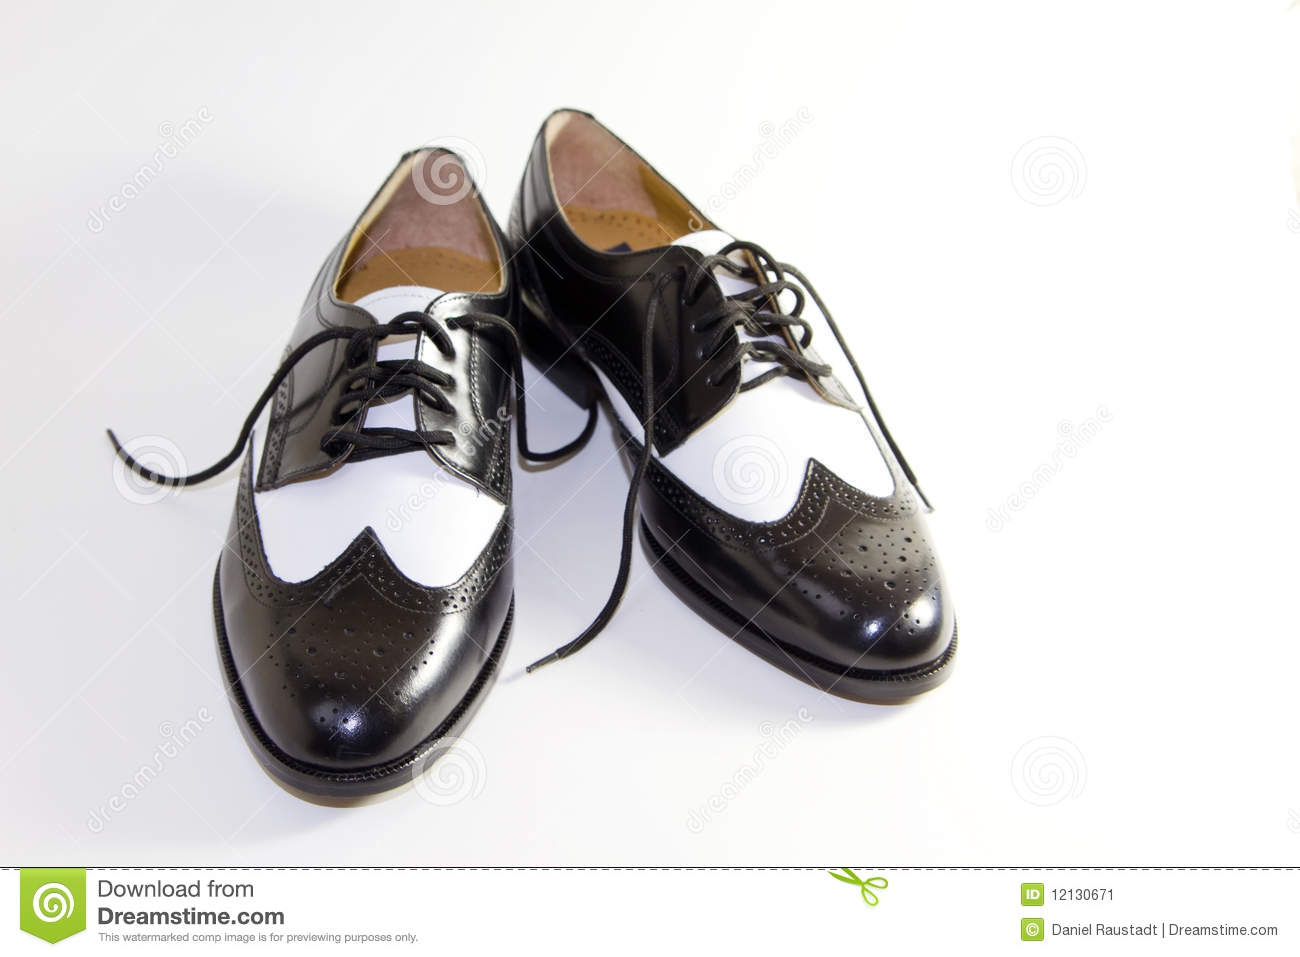 20ef8eff20bfb Black and white wingtip leather shoes were very stylish in the 1920s  through the 1940s.